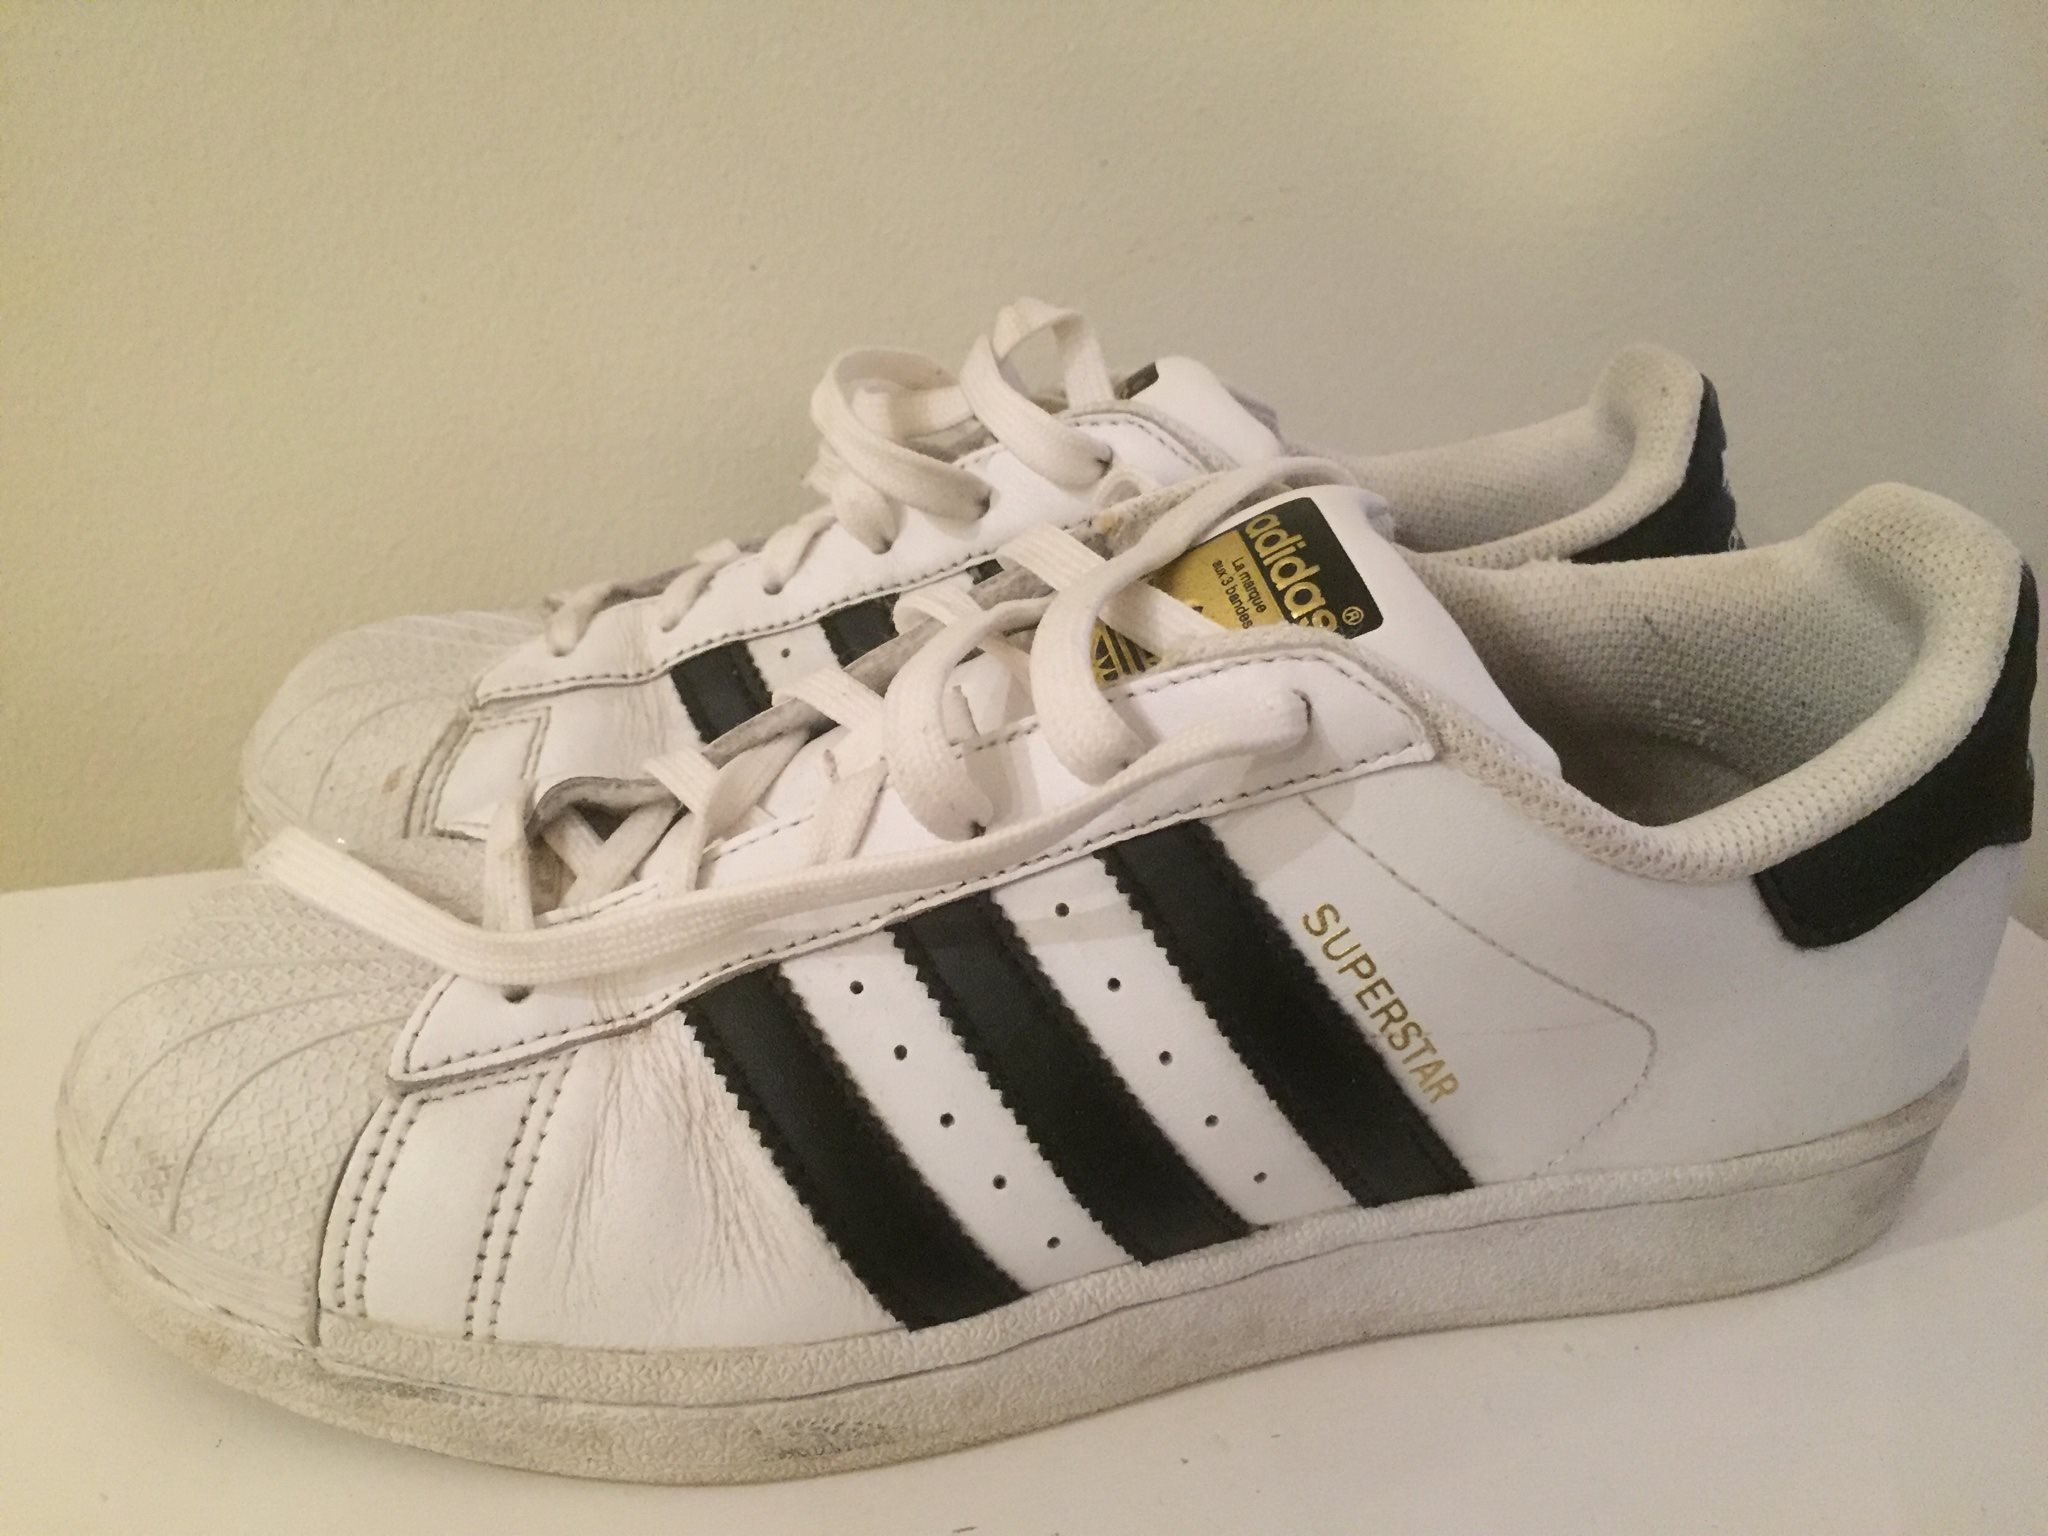 99b05840351f3 Adidas superstar stl 38 (335376171) ᐈ Köp på Tradera